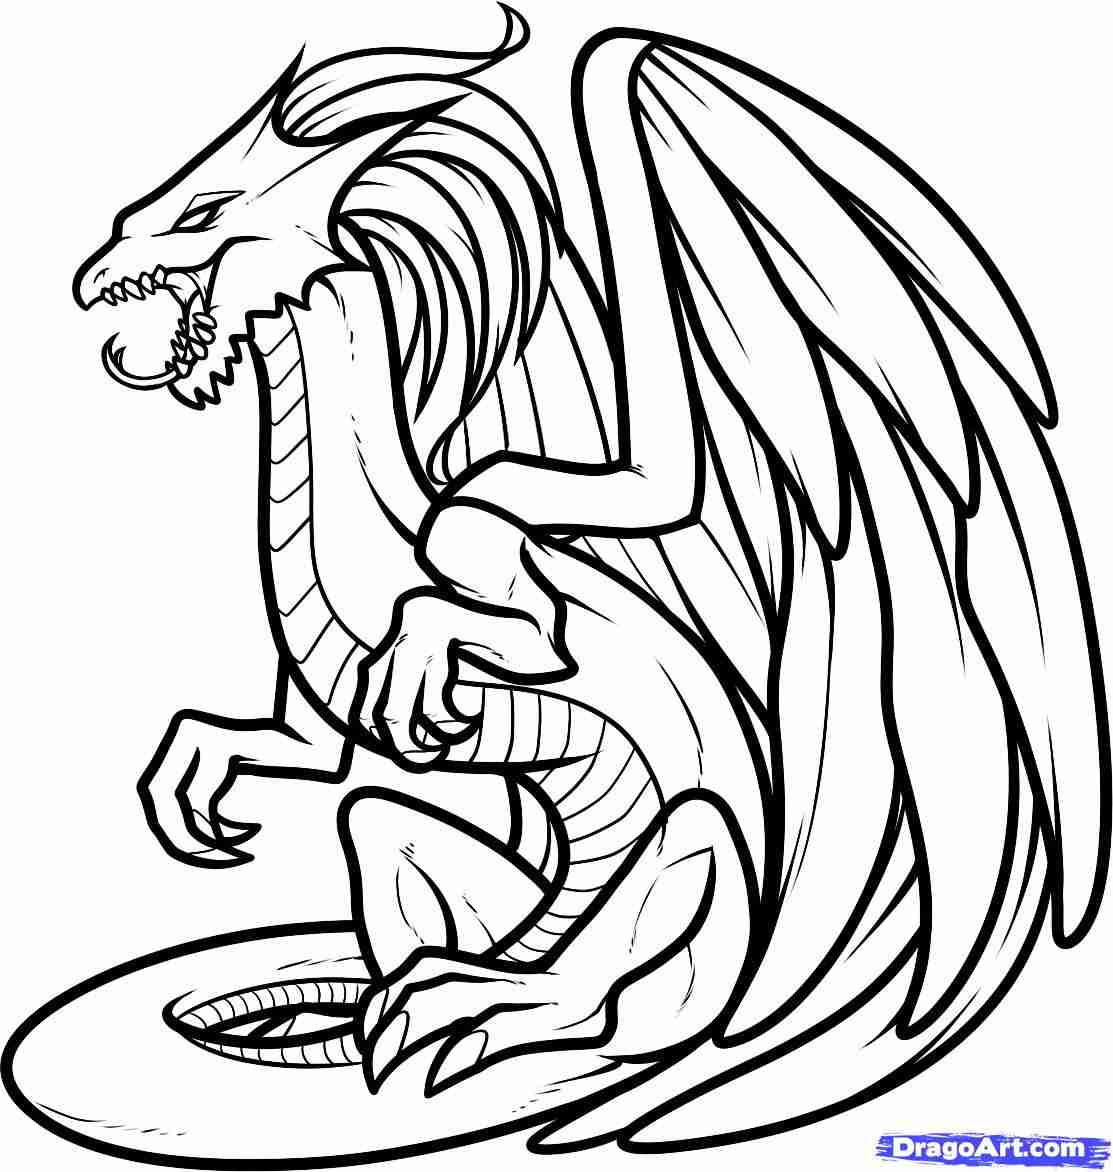 fire realistic dragon coloring pages download printable 17 fire dragon coloring pages fire dragon pages coloring realistic